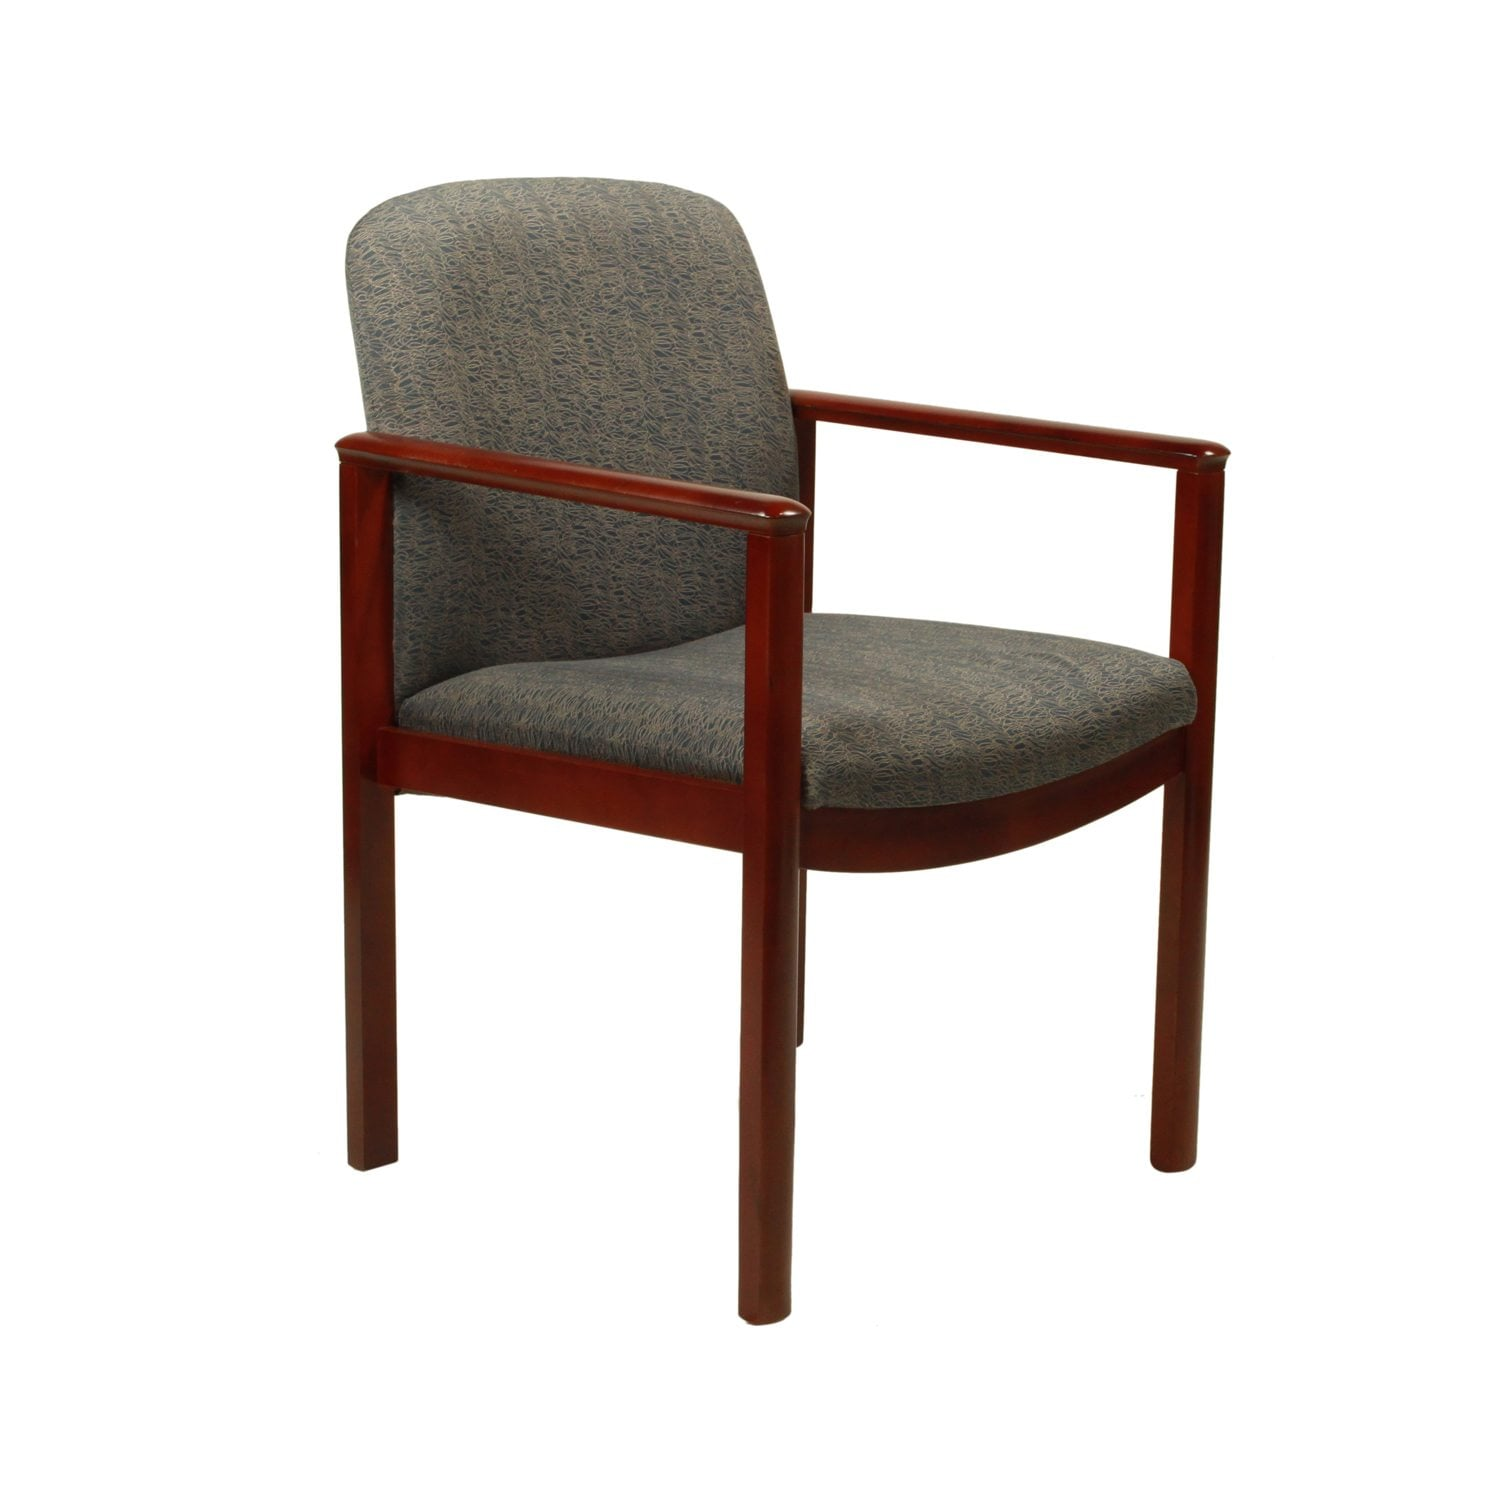 Astonishing Krug Chairs Solid Oak Krug Office Chairs With Arms Shows Evergreenethics Interior Chair Design Evergreenethicsorg